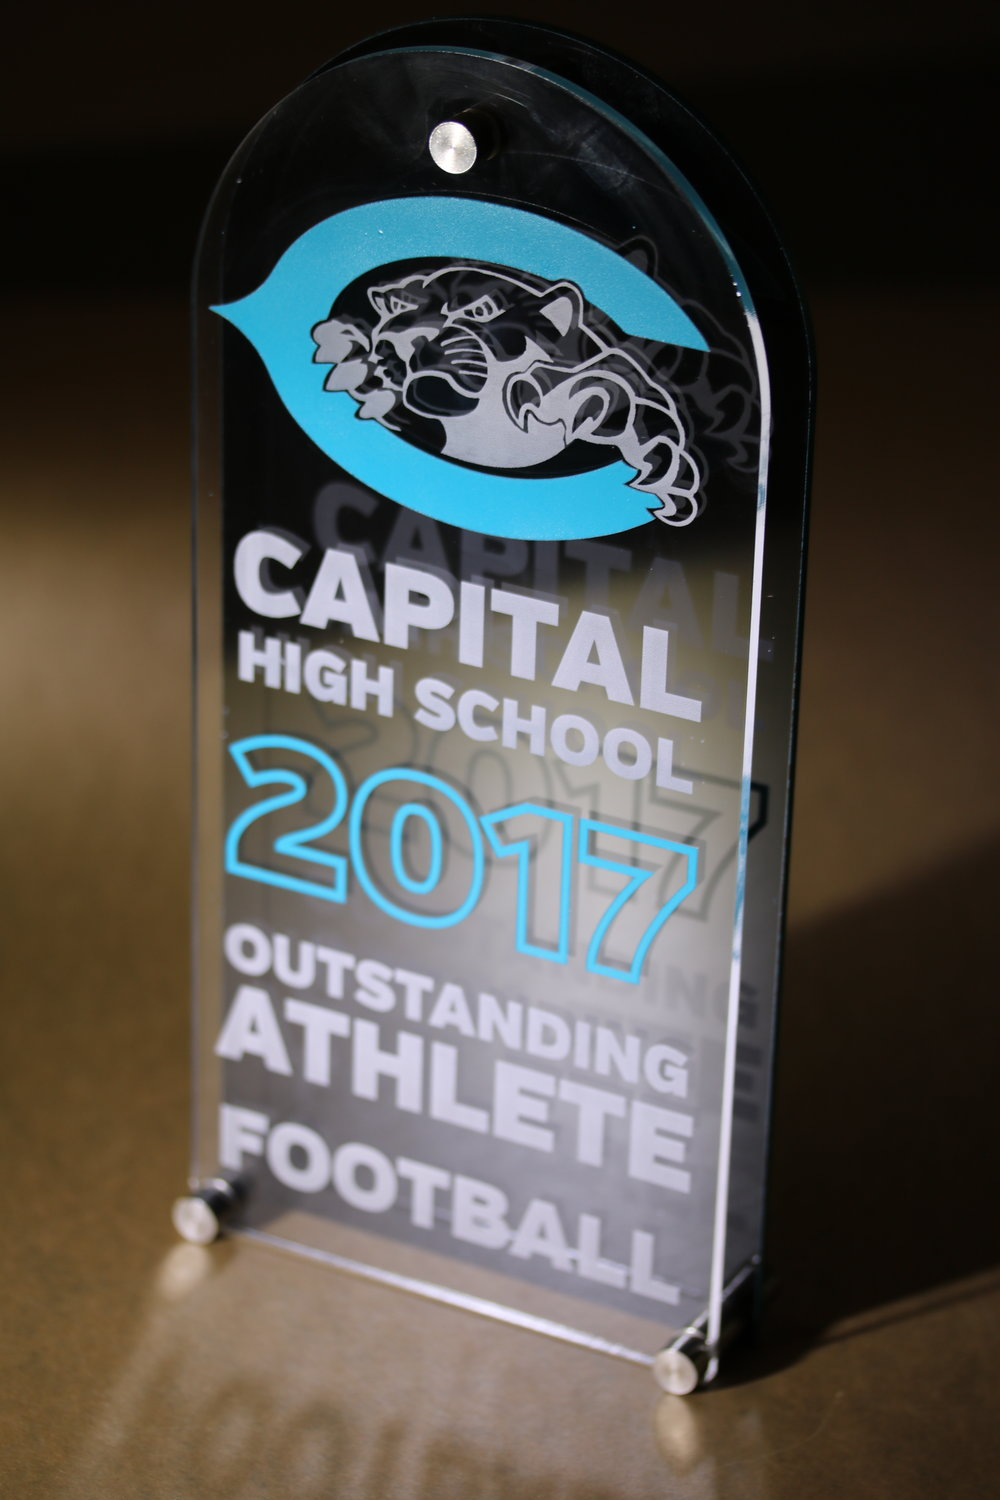 Capital High School - Outstanding Athlete Award  Contact us for pricing information.